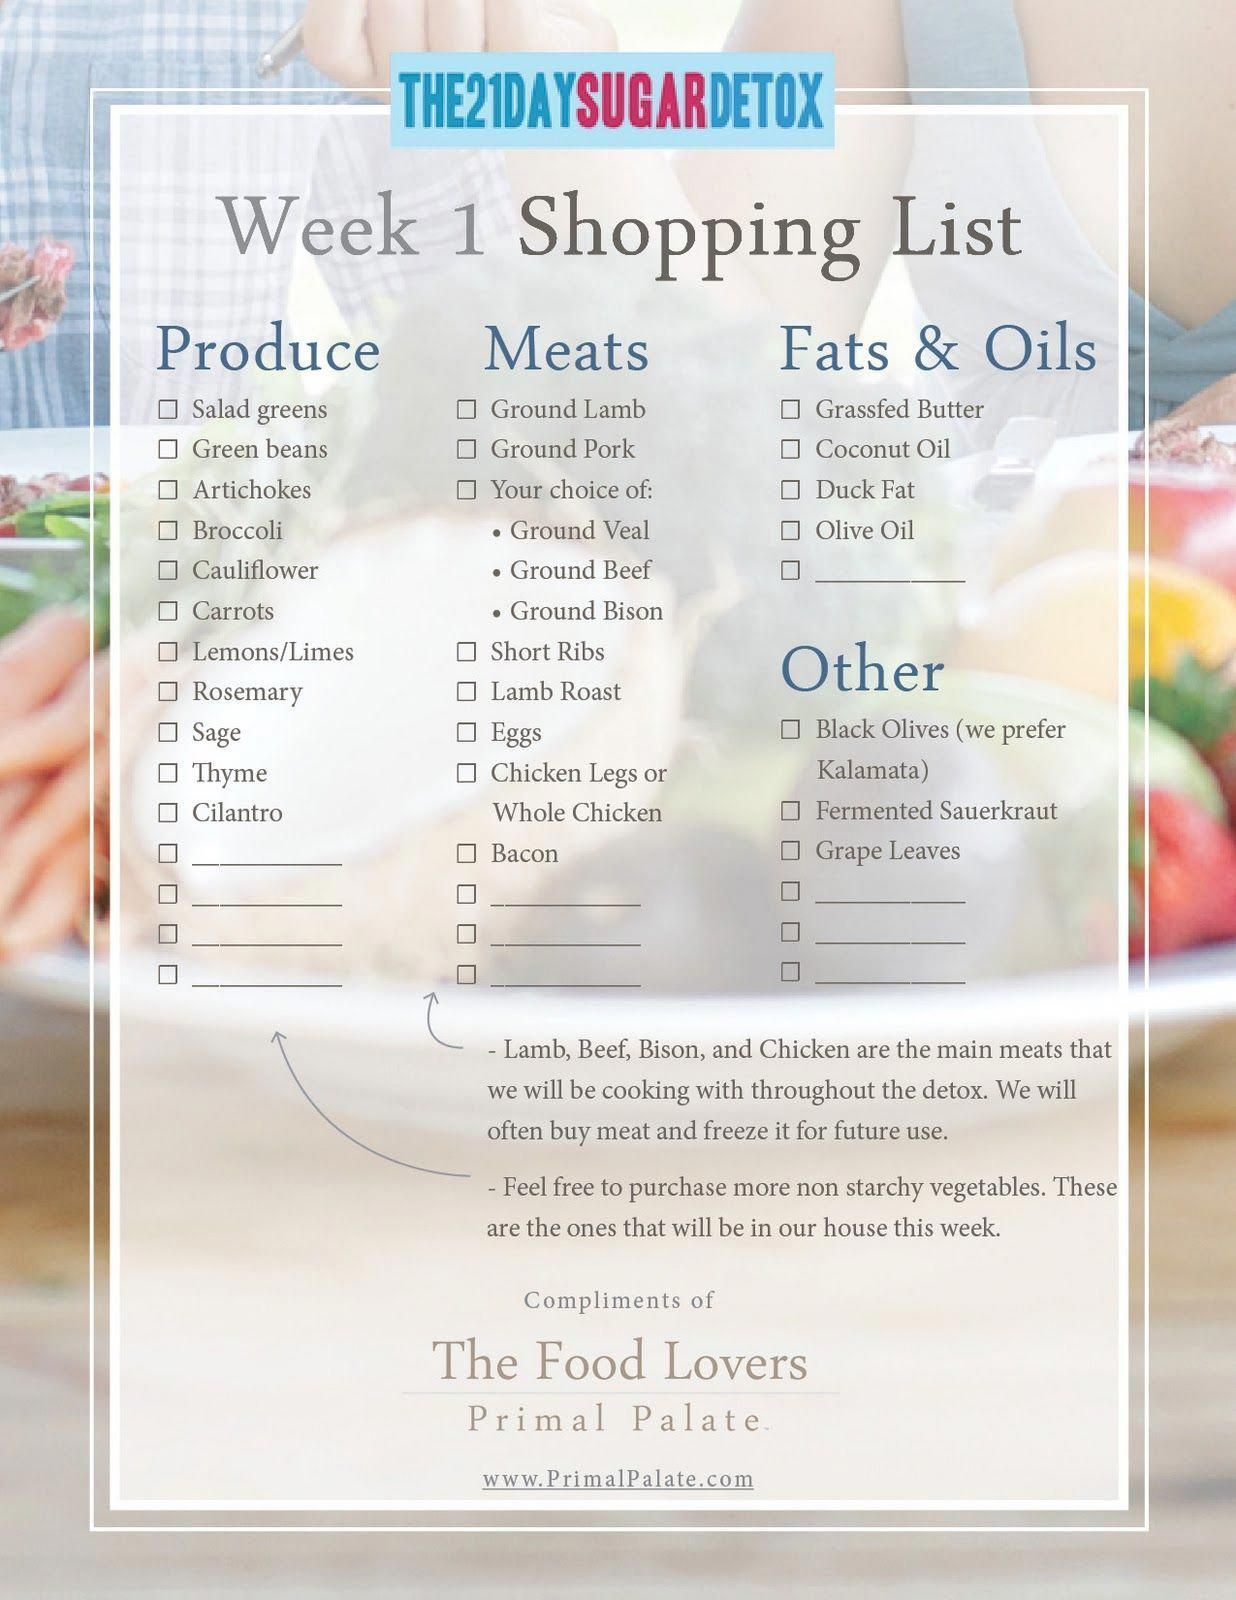 The 21 Day Sugar Detox - The Food Lovers Kitchen #SugarDetox #DetoxDiets #sugardetoxtips #sugardetoxplan